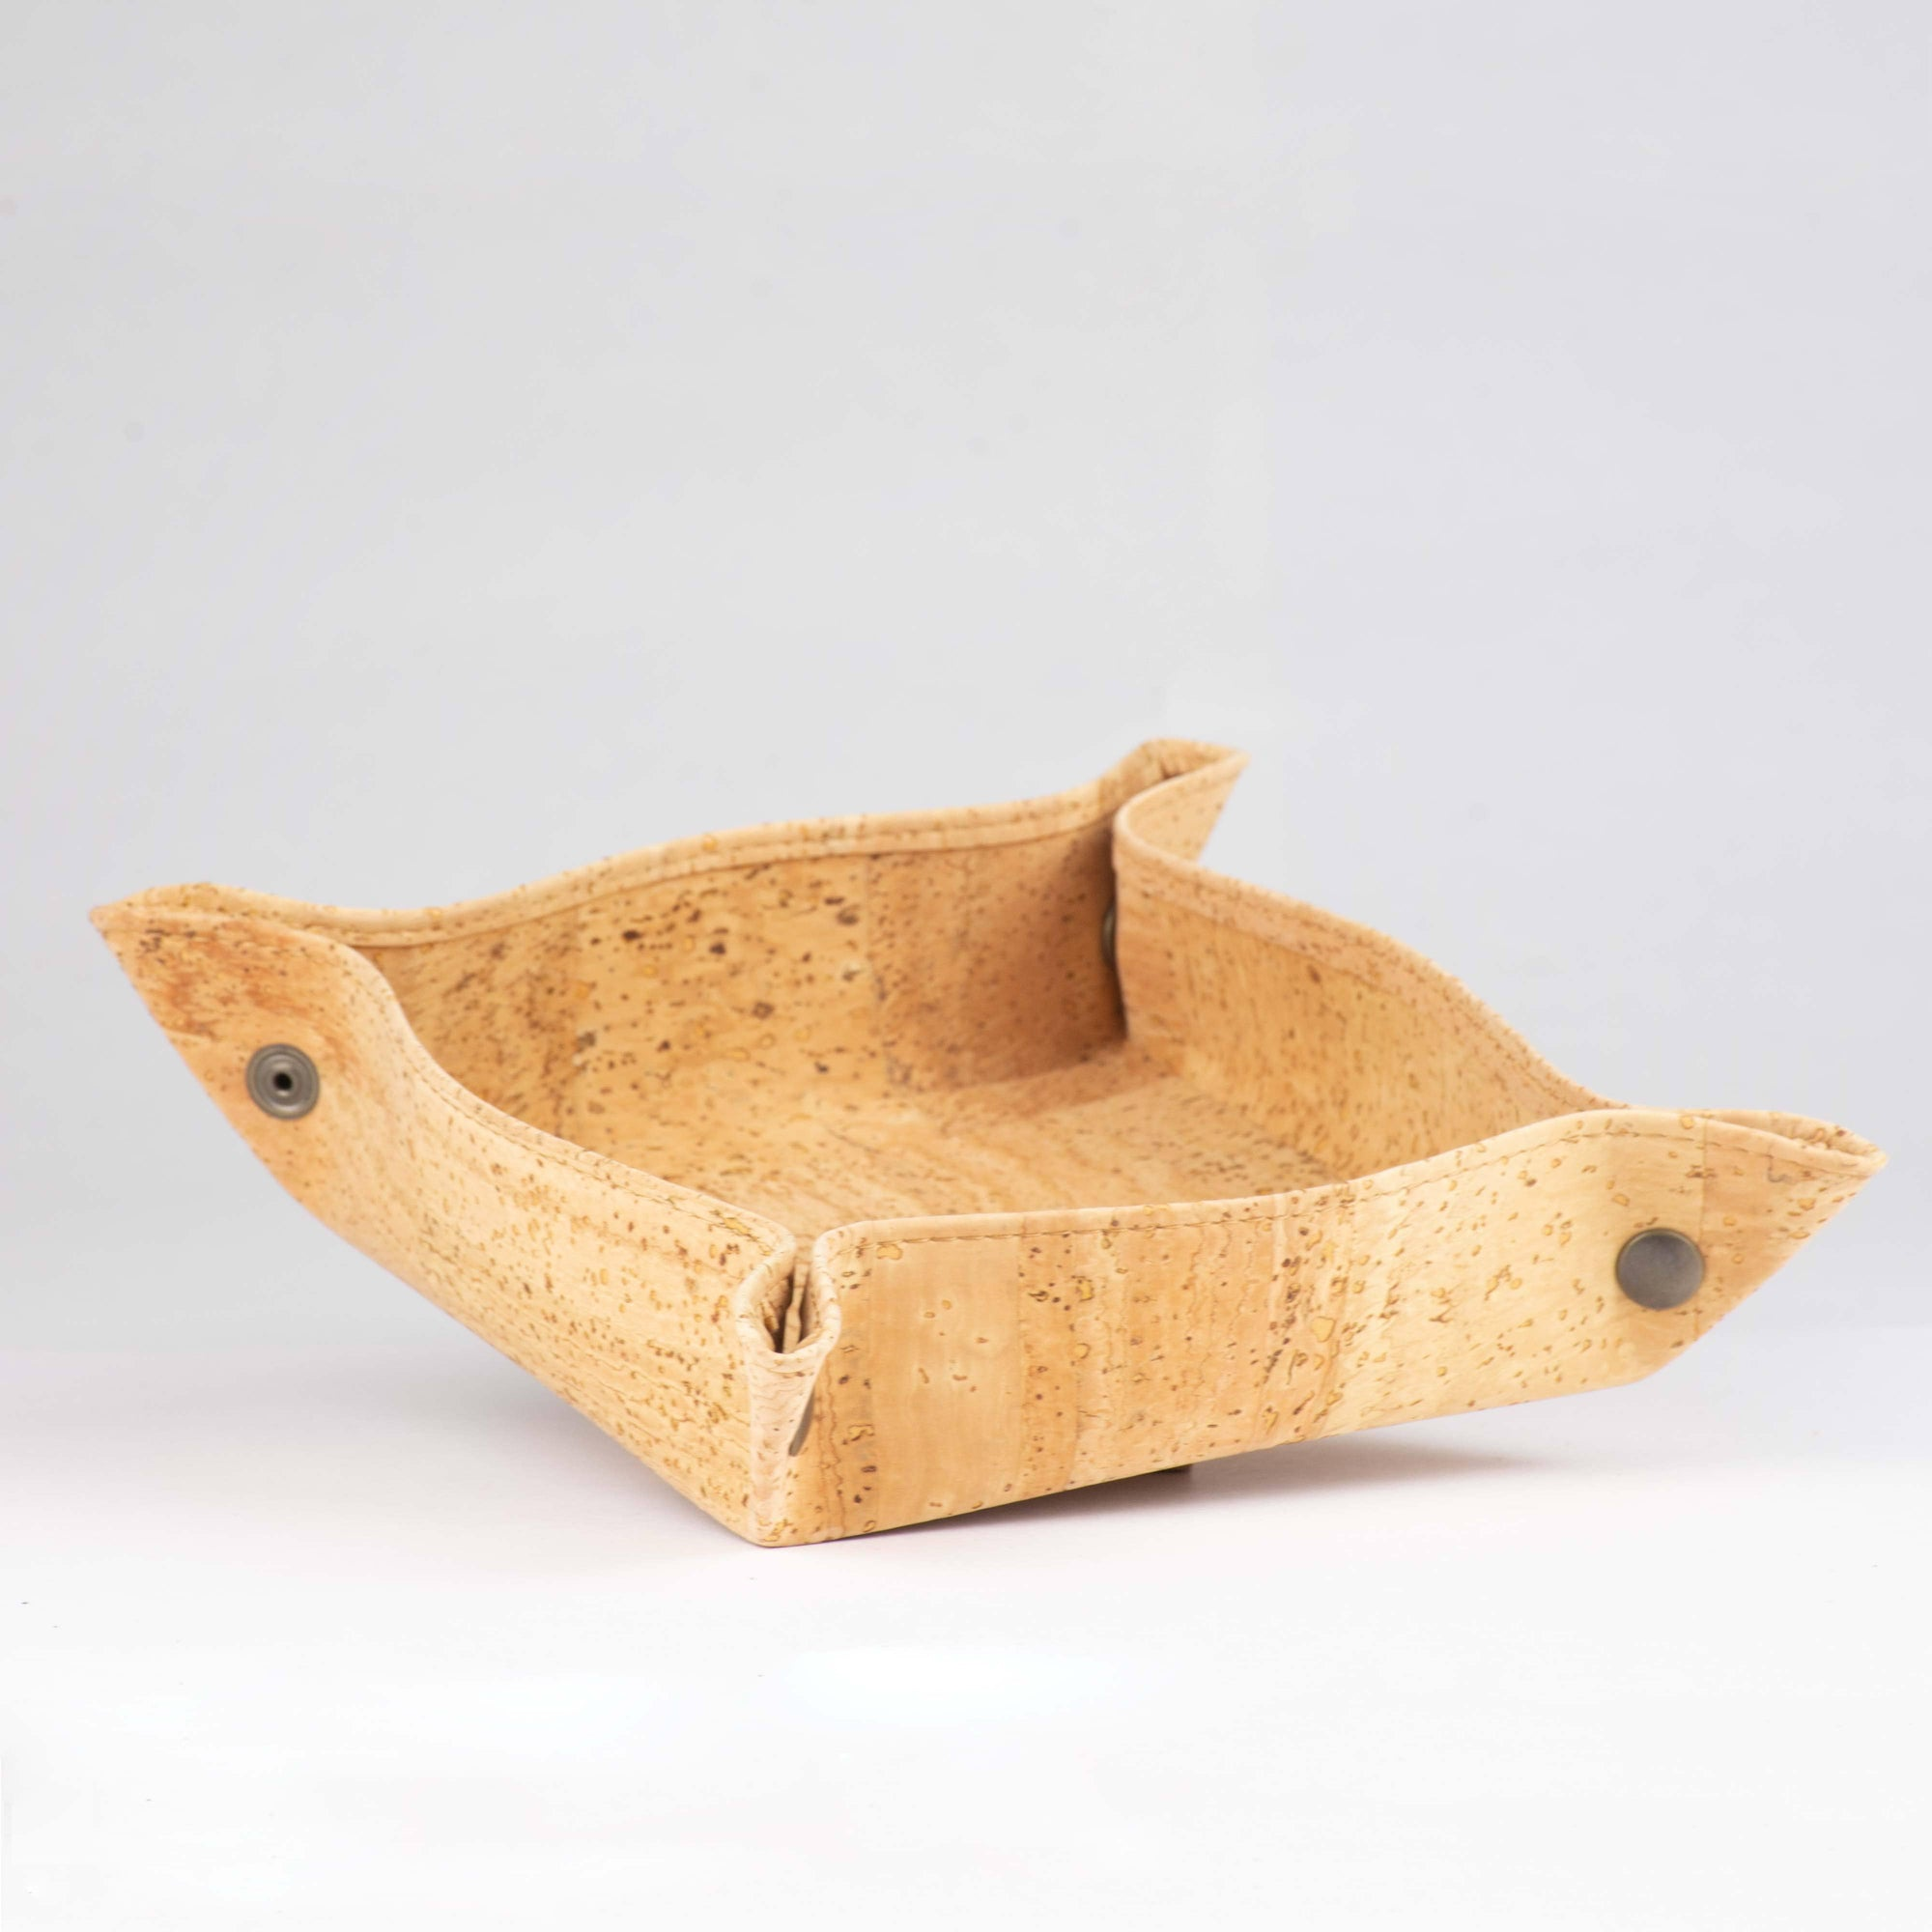 Cork Folding Tray / Catchall / Empty Pockets - Naturally Anti-Microbial Hypoallergenic Sustainable Eco-Friendly Cork